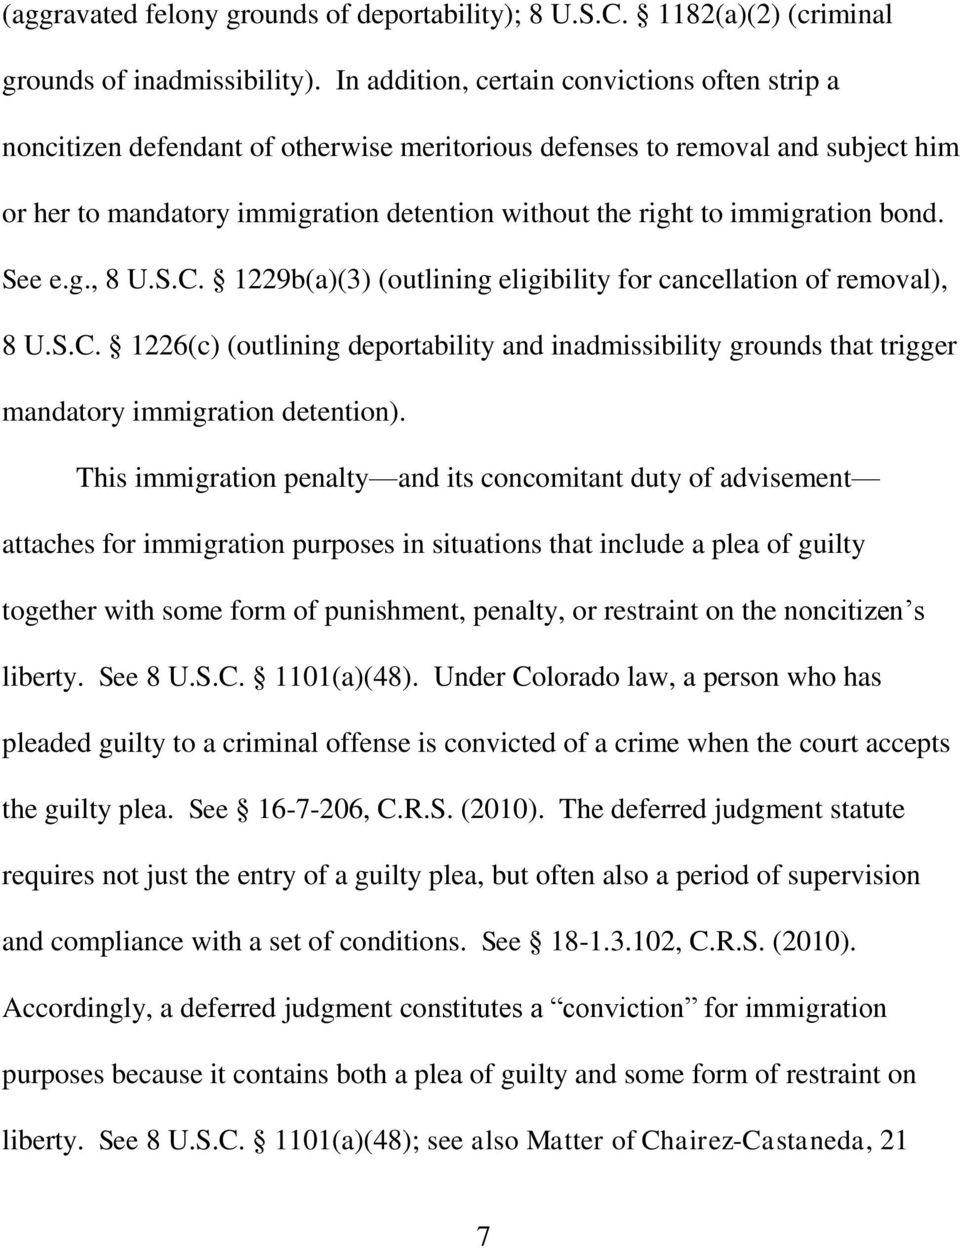 immigration bond. See e.g., 8 U.S.C. 1229b(a)(3) (outlining eligibility for cancellation of removal), 8 U.S.C. 1226(c) (outlining deportability and inadmissibility grounds that trigger mandatory immigration detention).